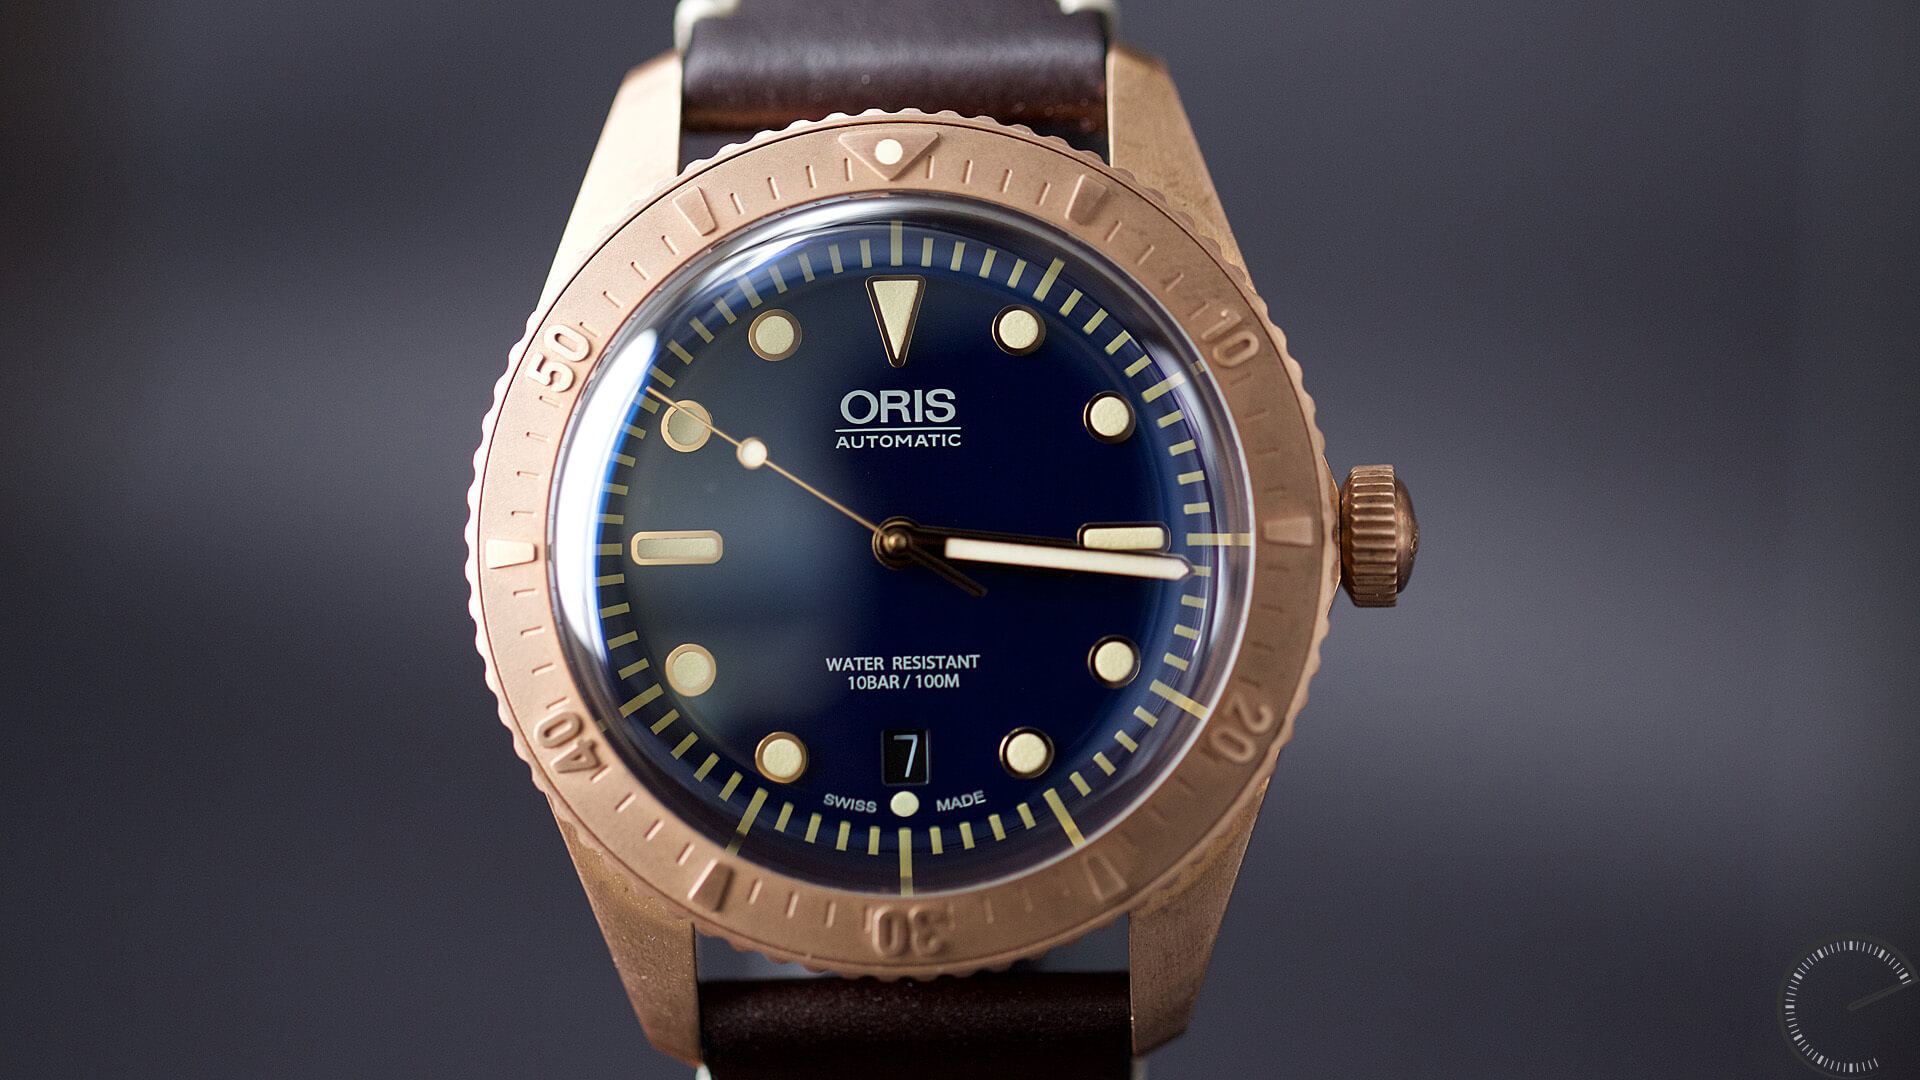 carl brashear The oris divers sixty-five was one of our favorite watches of last year many across the watch world fell in love with its unabashed old-school mentality with modern-day quality, myself included it's a piece that seems to be destined for collectible status in the future now, for 2016, oris .